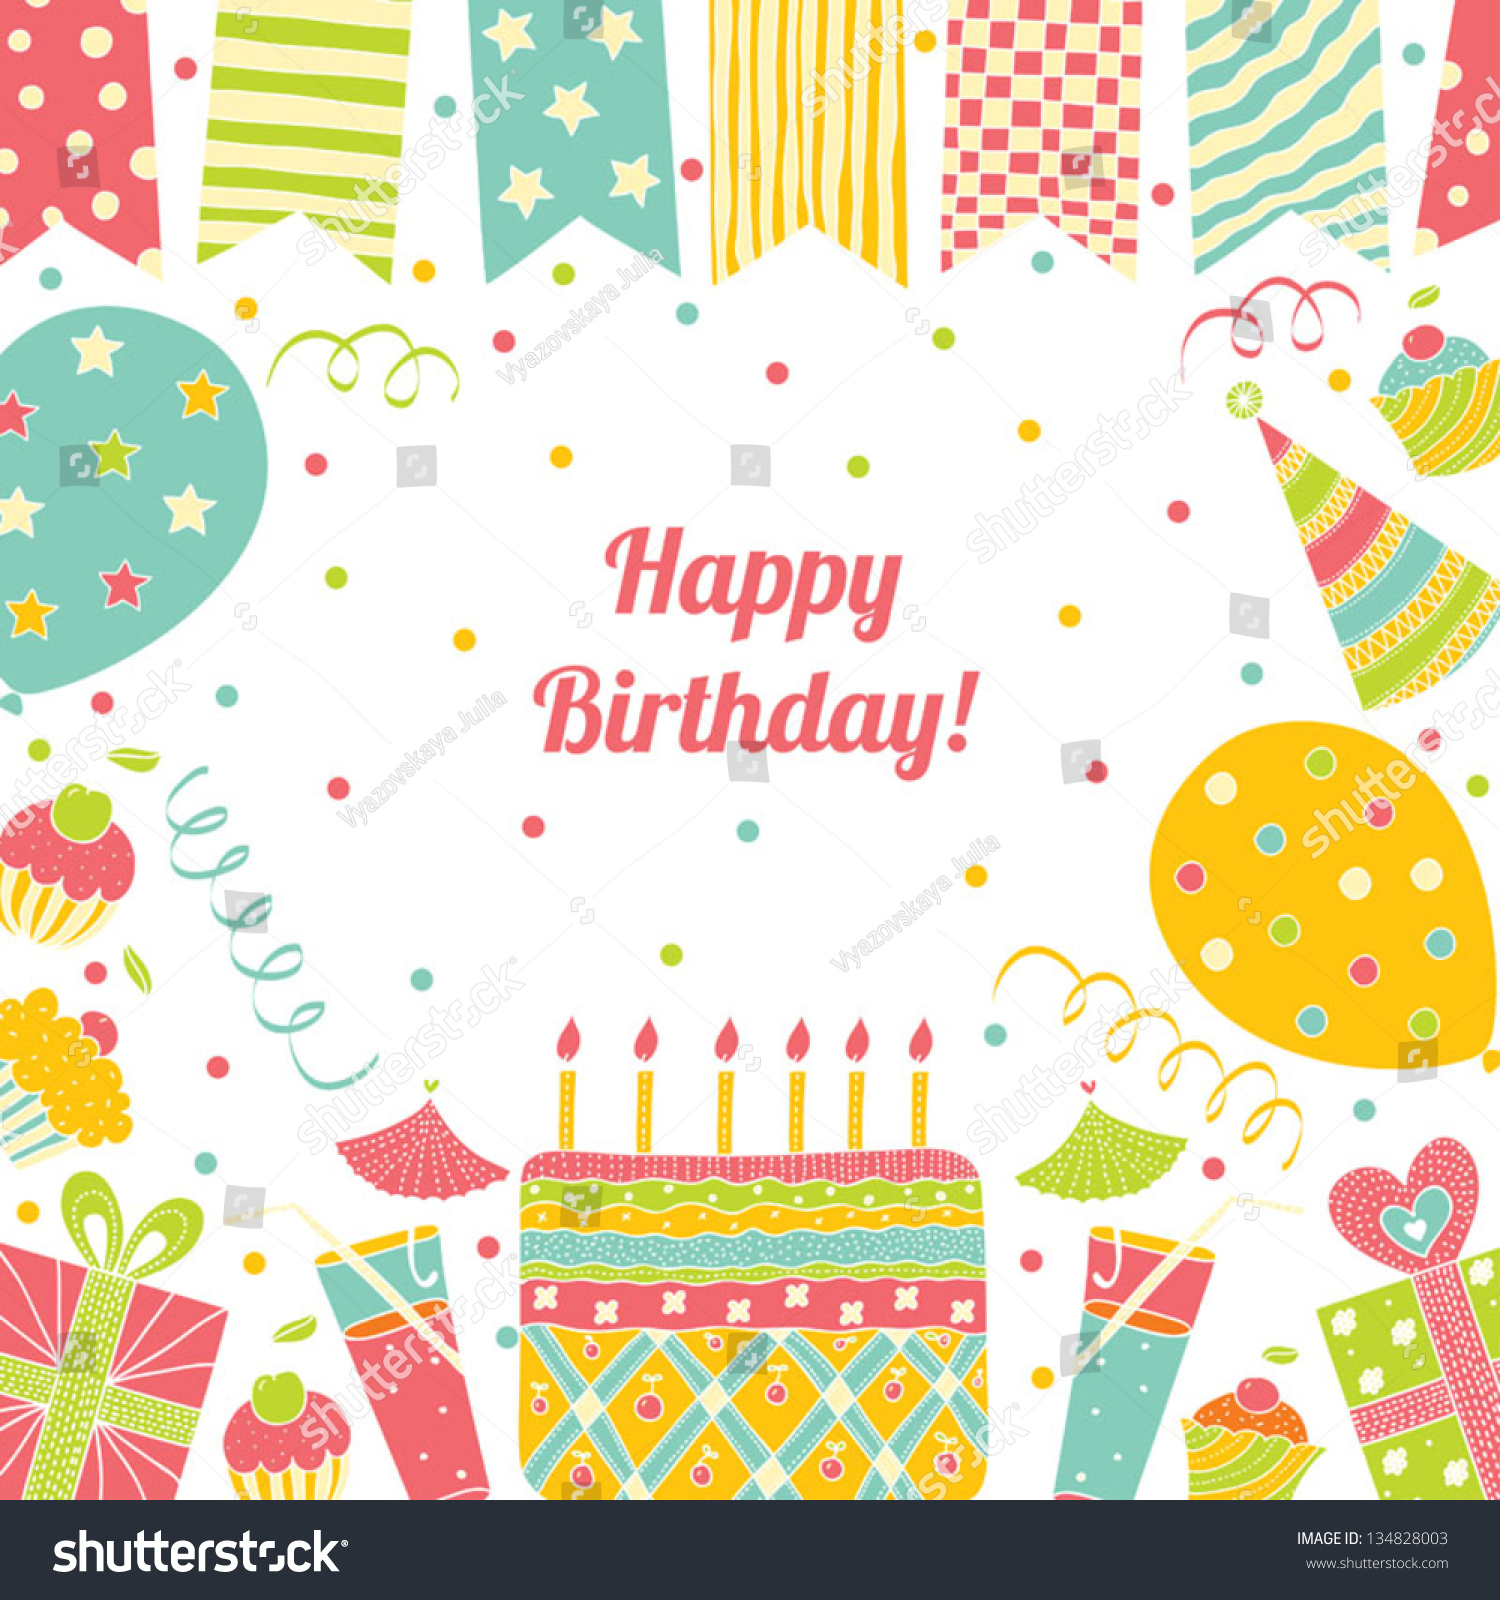 template happy birthday card place text stock vector 134828003 template for happy birthday card place for text